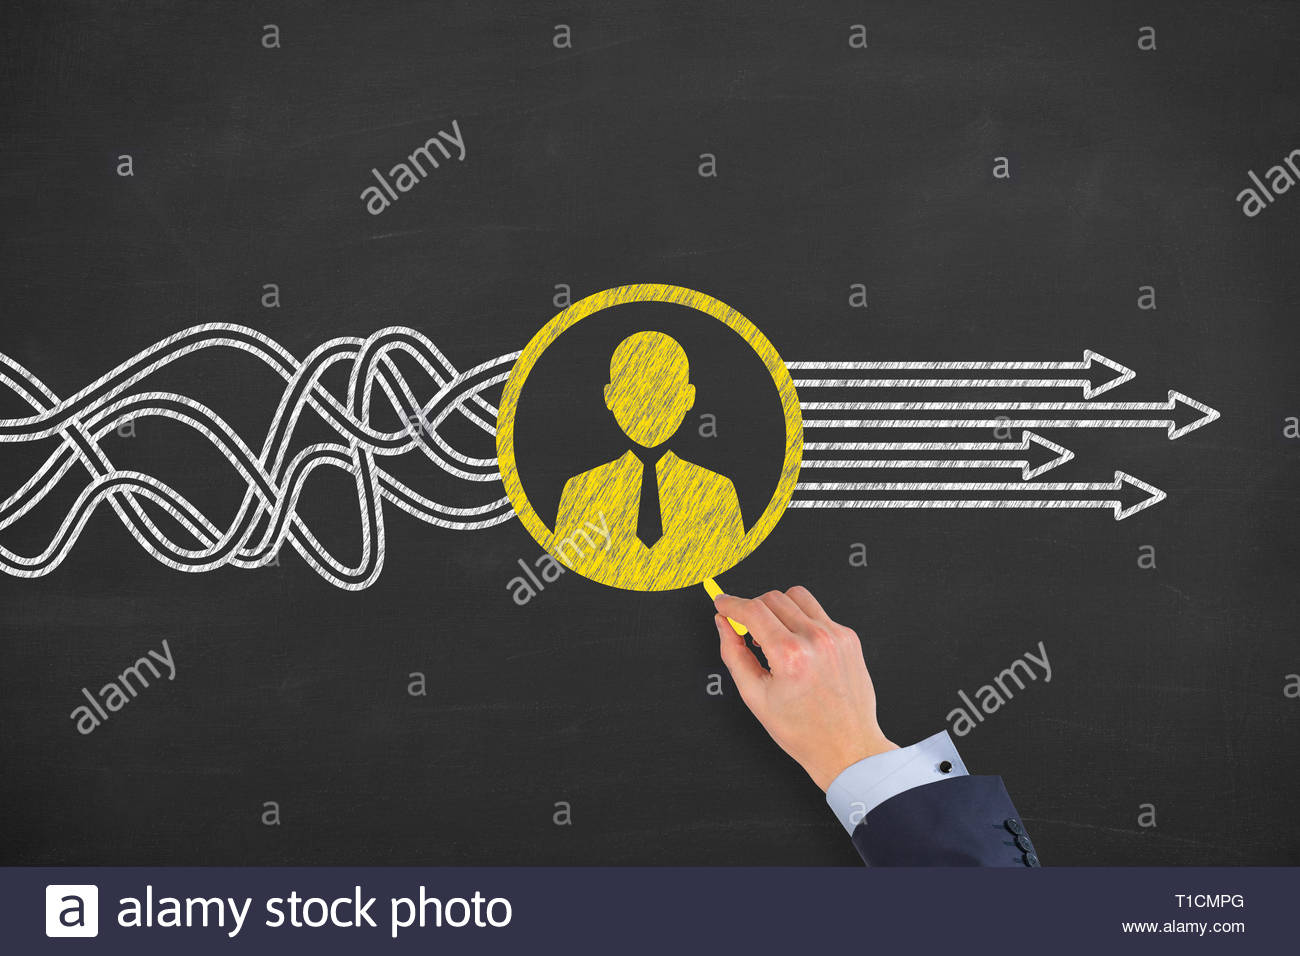 Human Resourses Solution Concepts on Blackboard Background Stock Photo